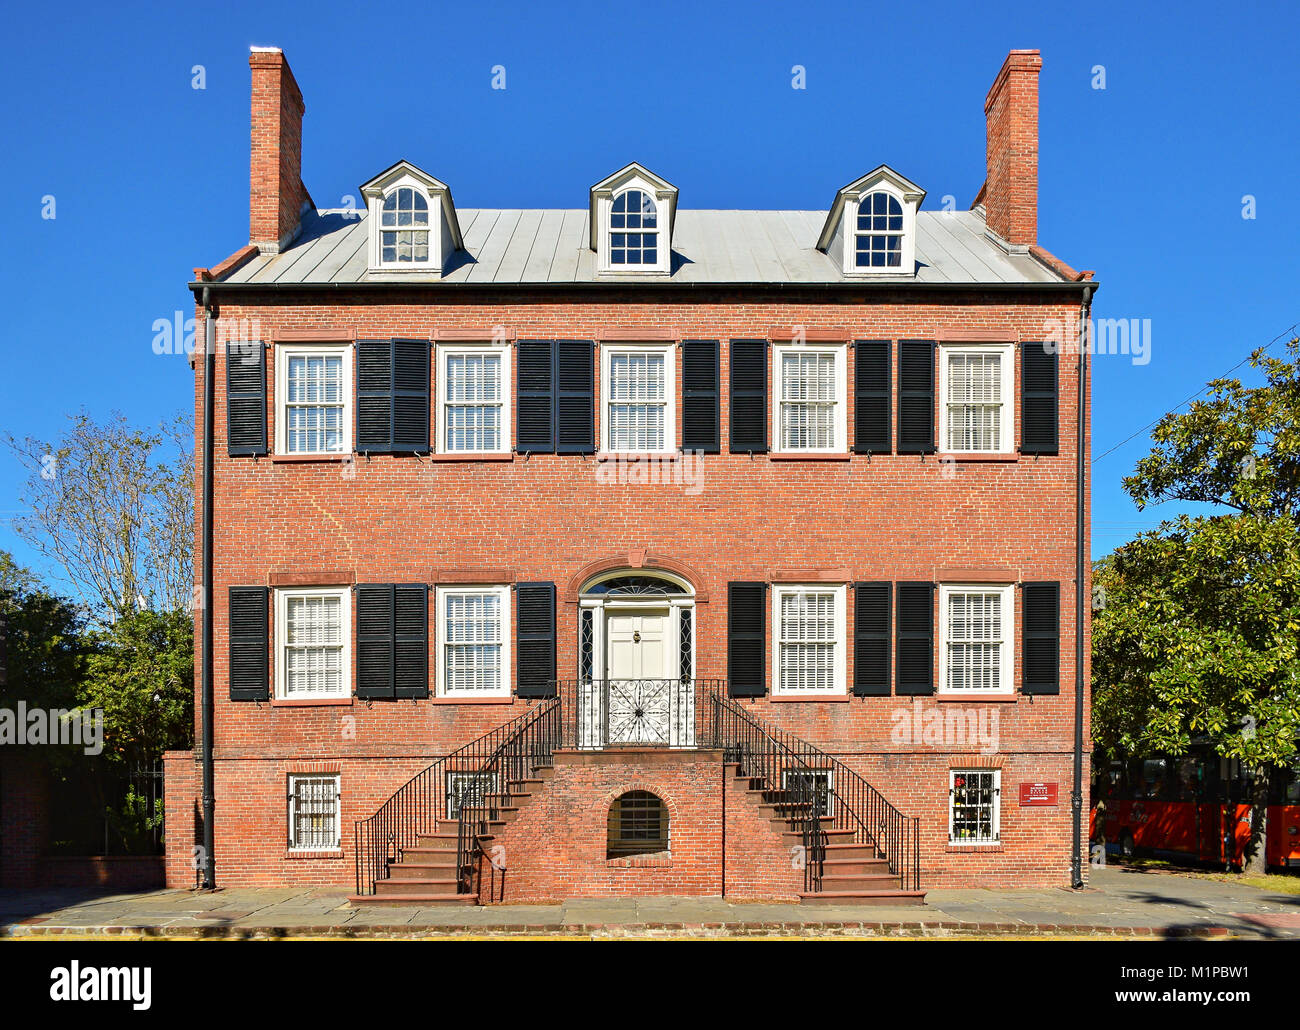 The Isaiah Davenport historic house and now a museum. Savannah, Georgia, United States. - Stock Image